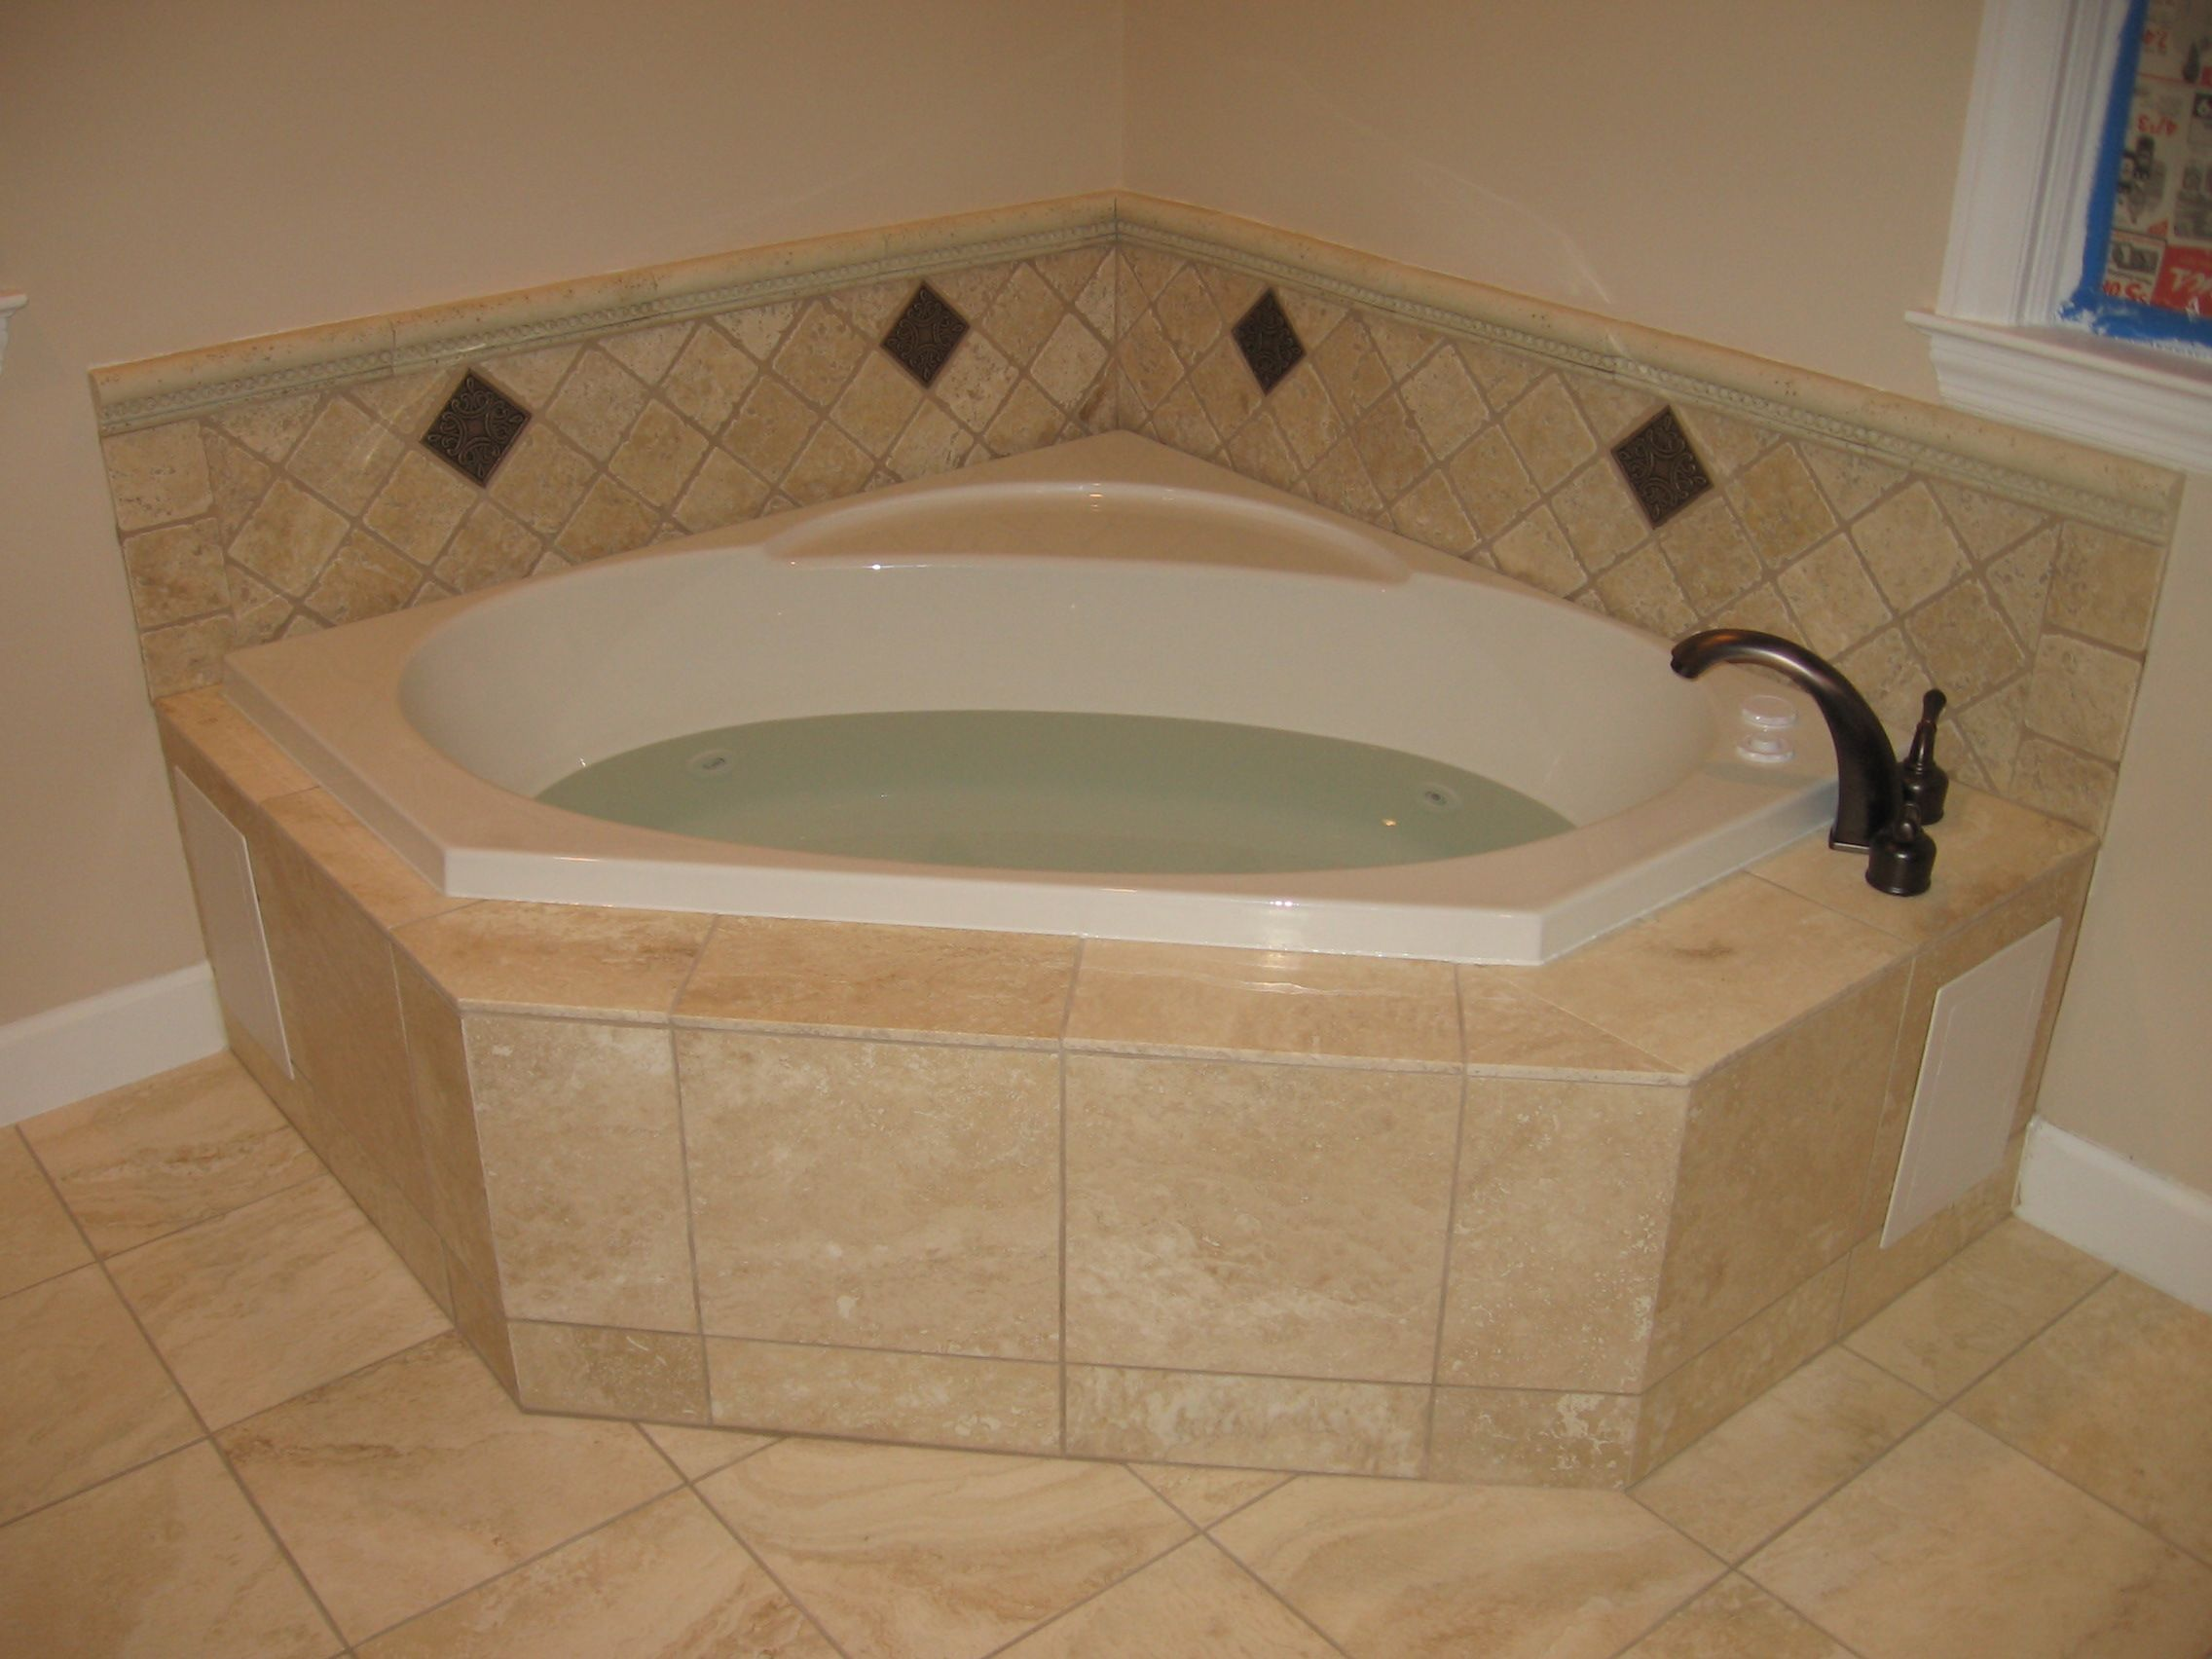 15 Interesting Whirlpool Corner Bathtub Picture Ideas | Dream Houses ...